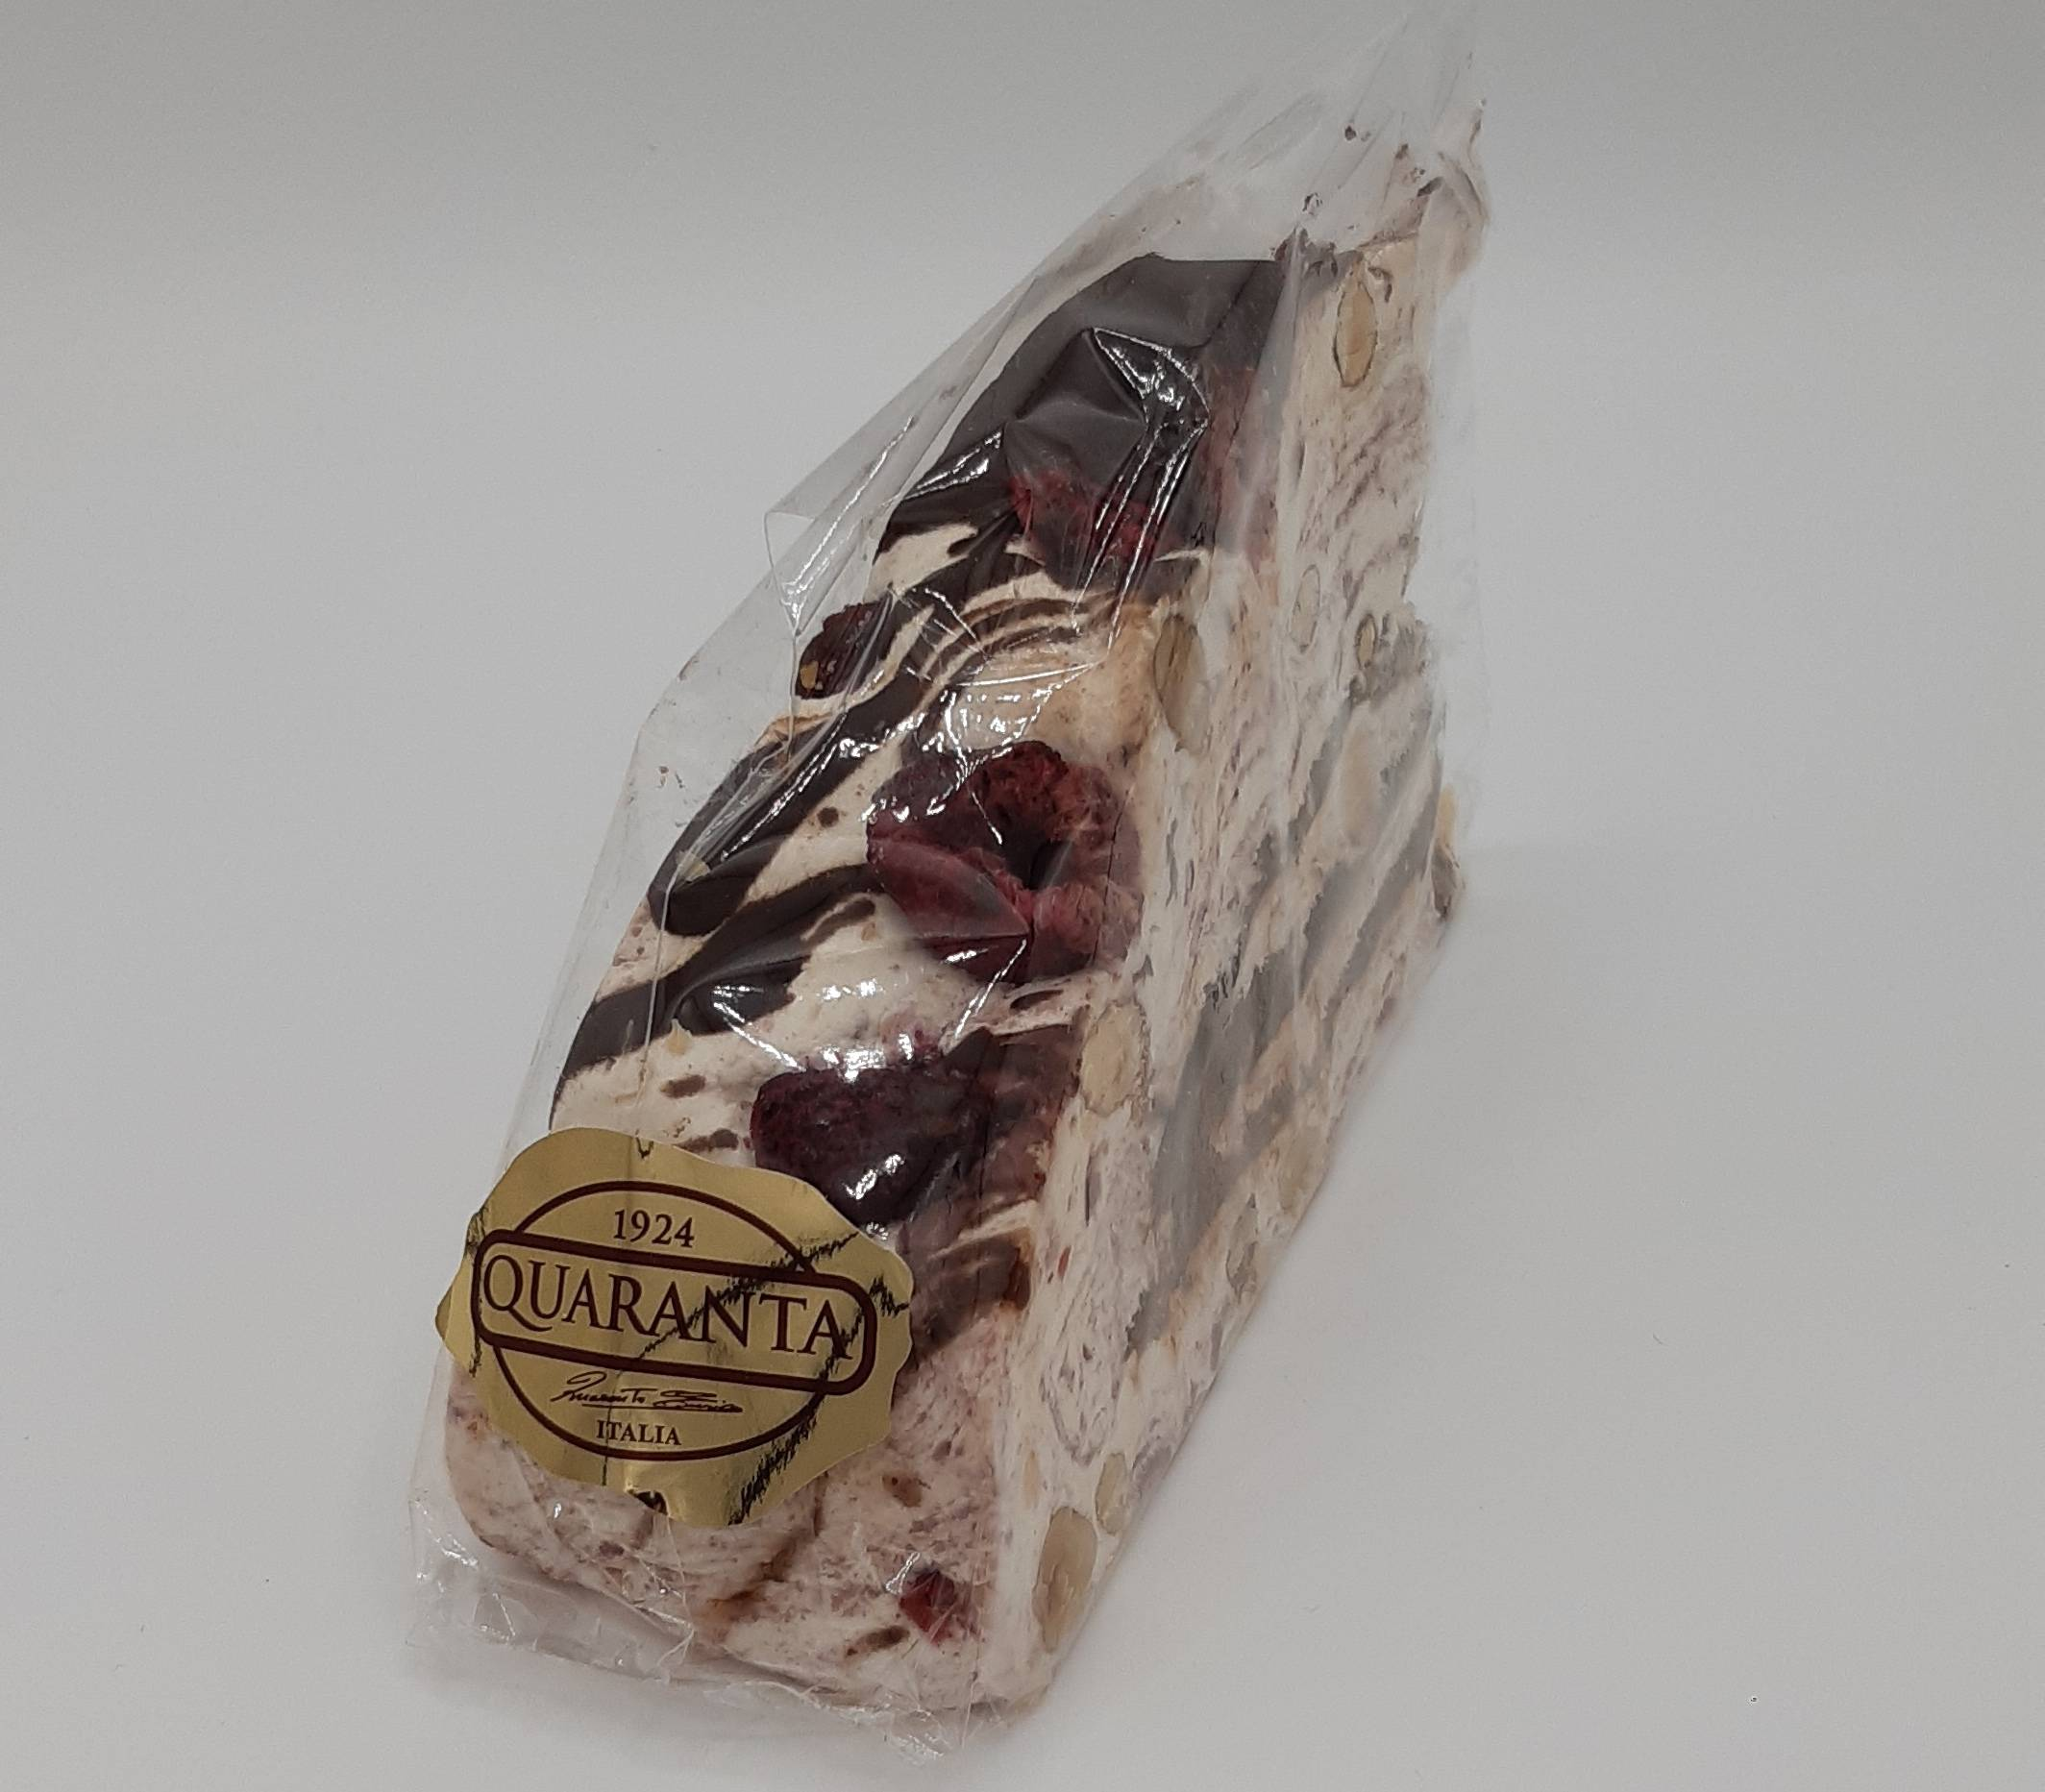 Quaranta Raspberry & Chocolate Nougat